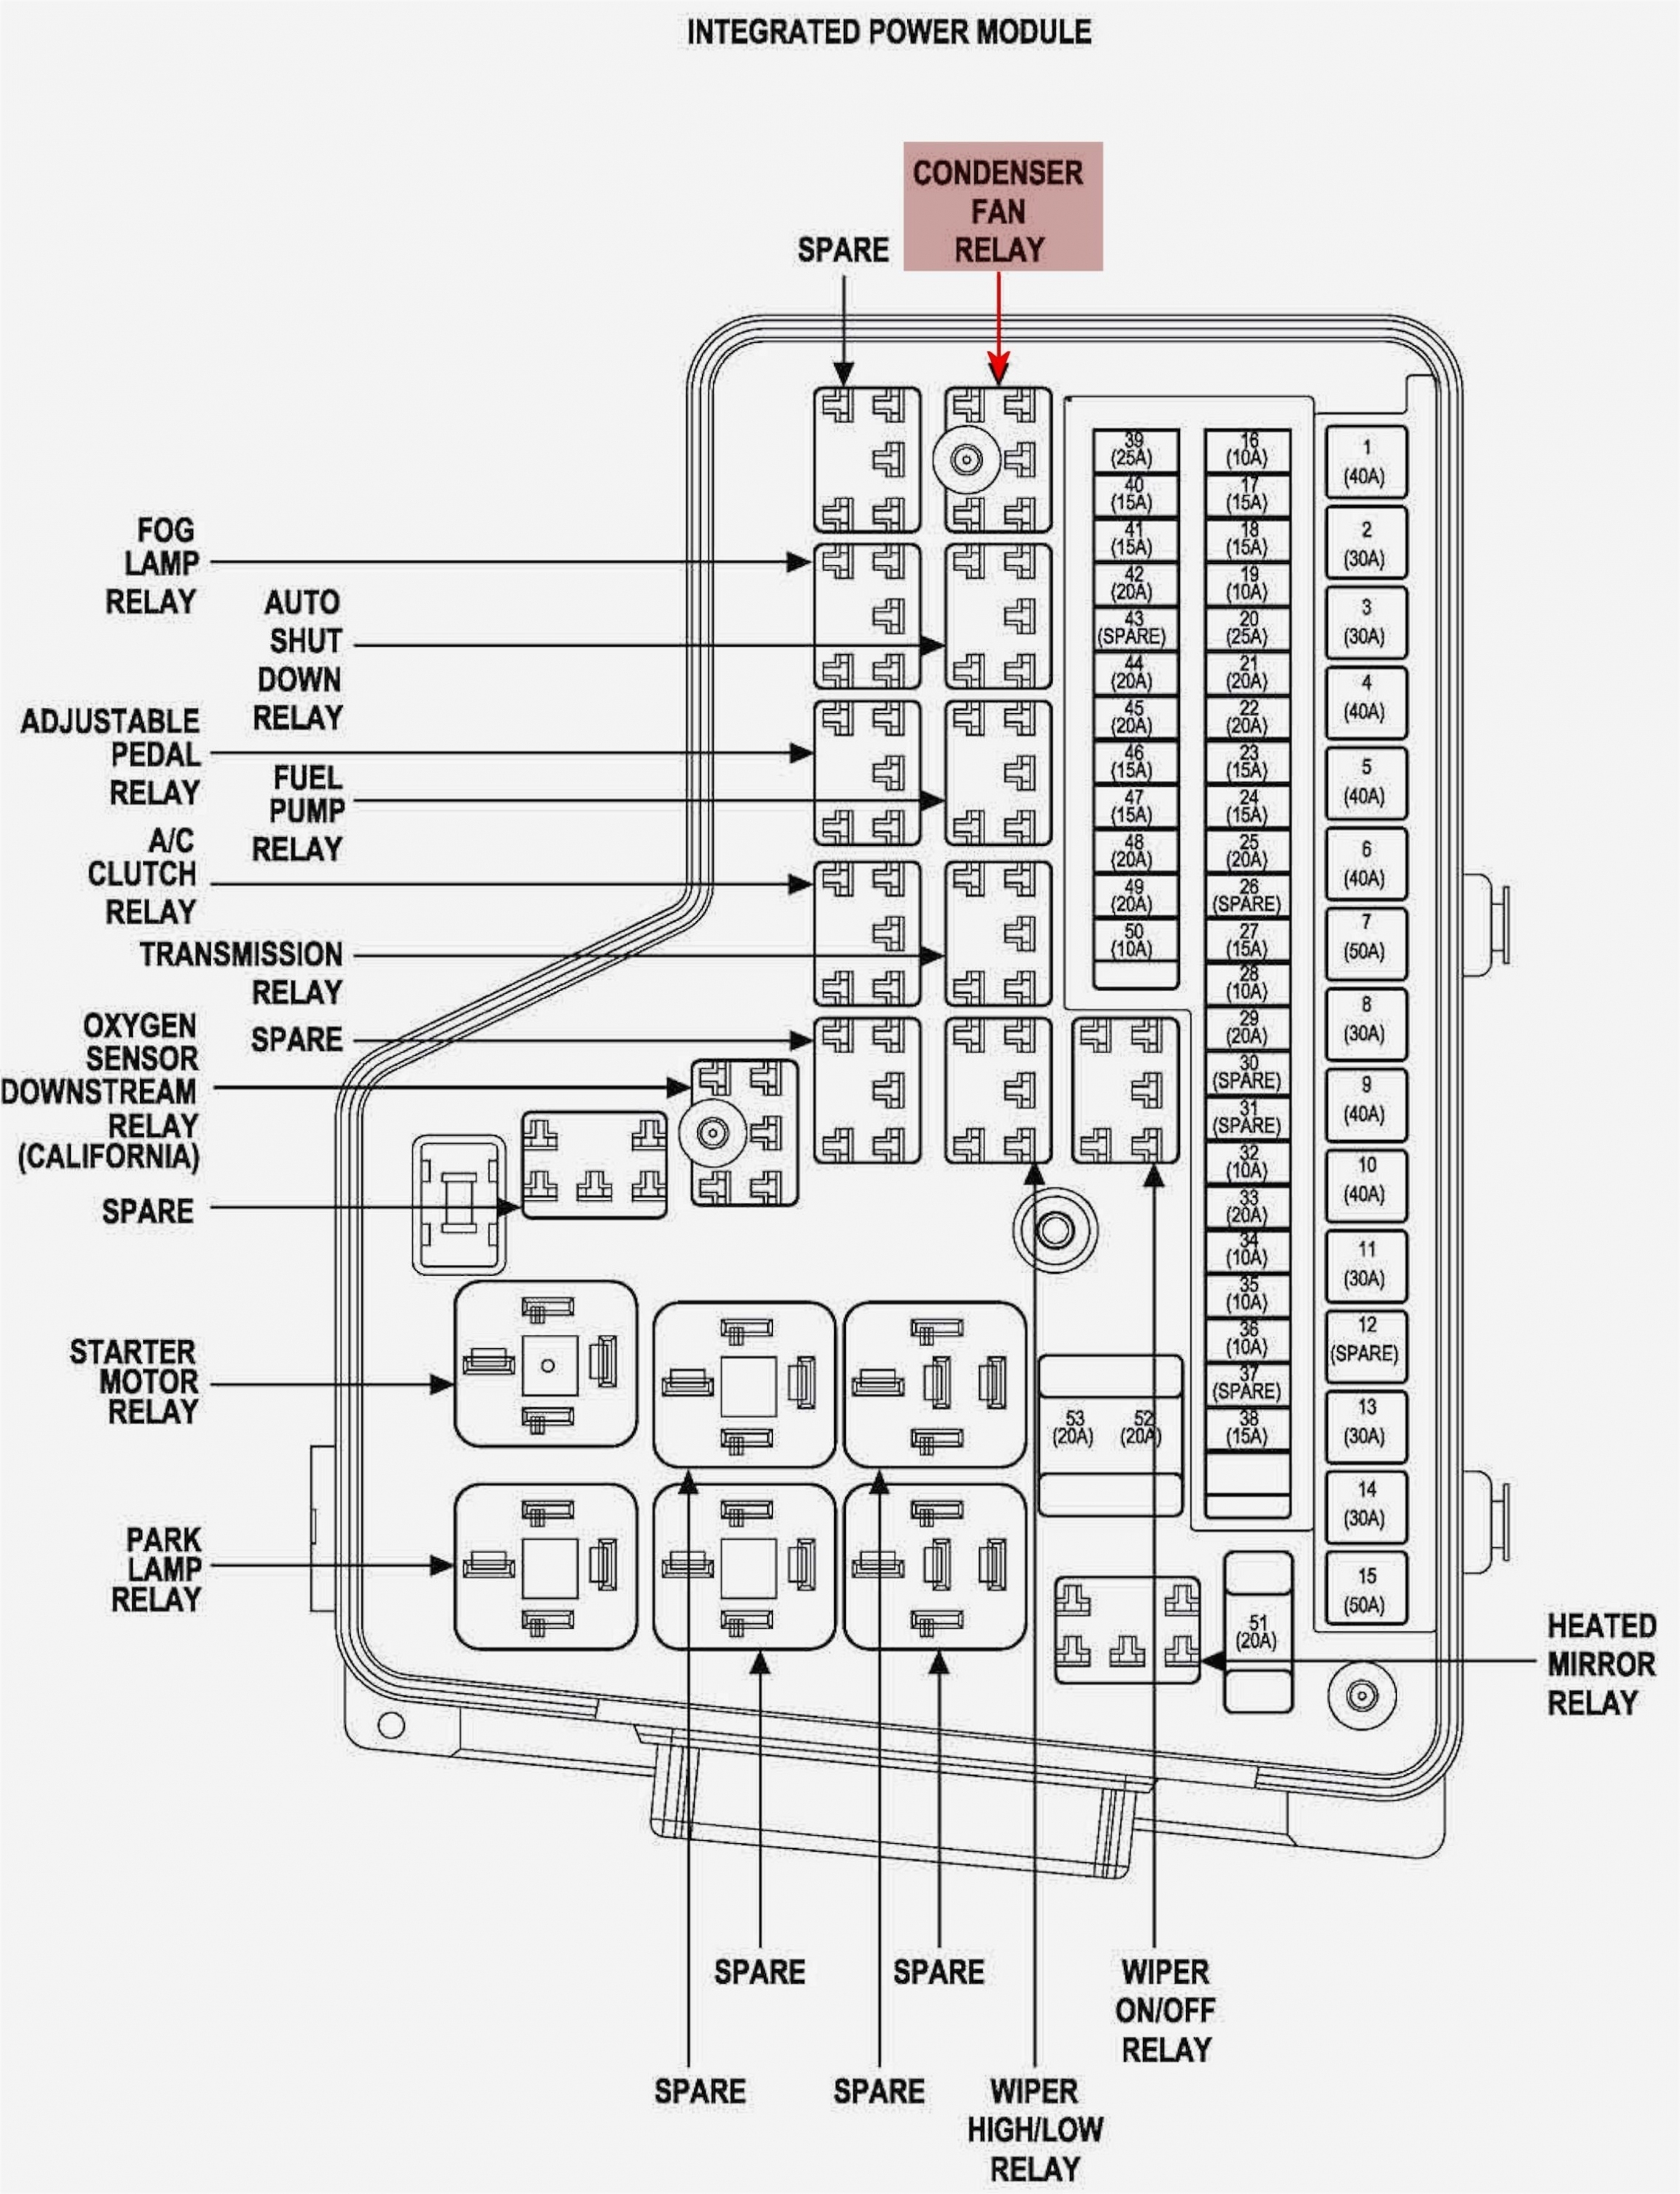 2012 ram 1500 fuse box wiring diagrams lol 2014 Jeep Fuse Box dodge ram fuse box cover wiring diagram update 2012 dodge ram 1500 fuse box location 1994